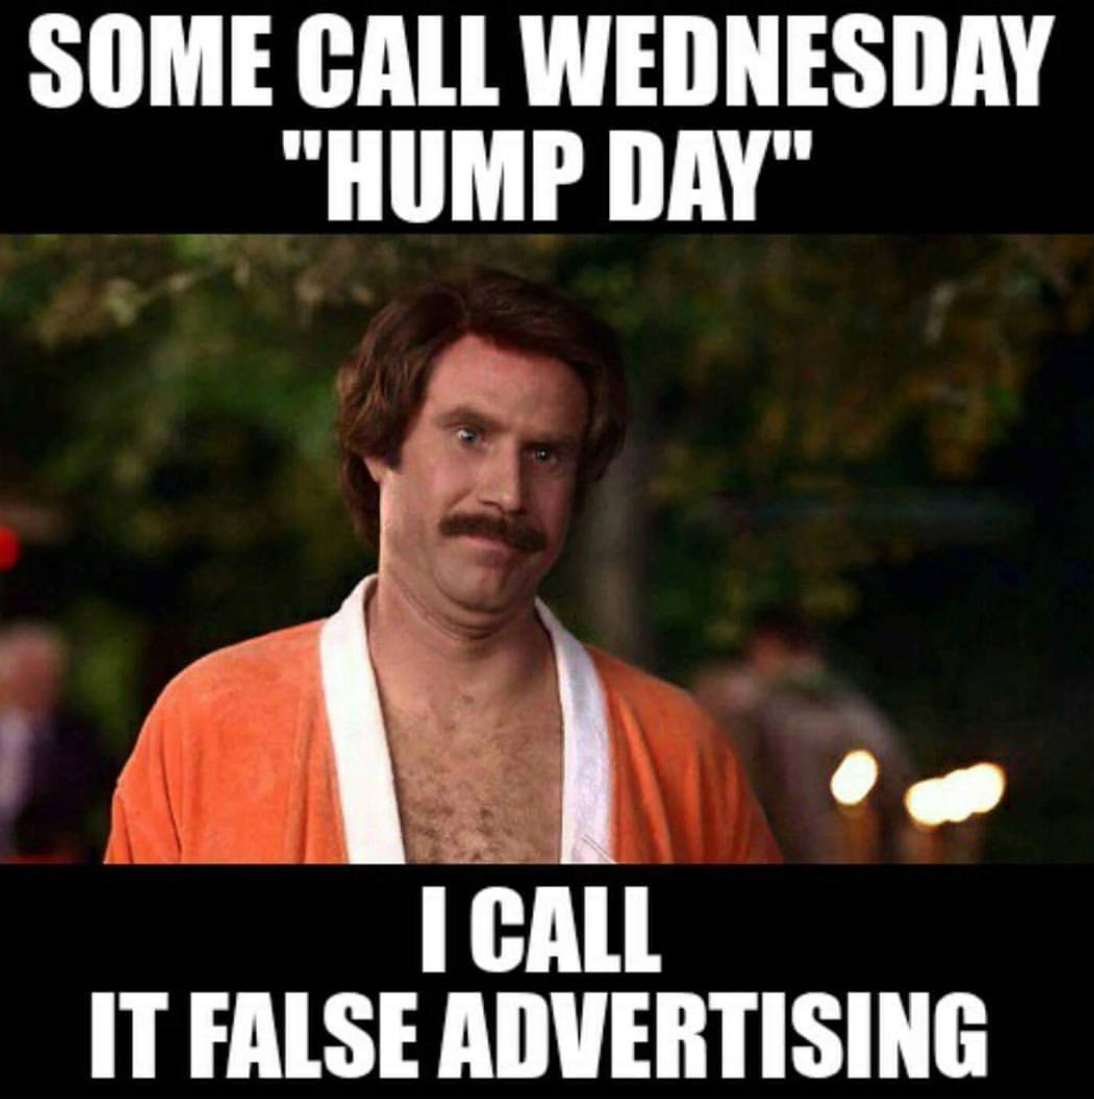 20 Hilarious Hump Day Memes To See You Through To The Weekend Funny Hump Day Memes Hump Day Humor Hump Day Meme